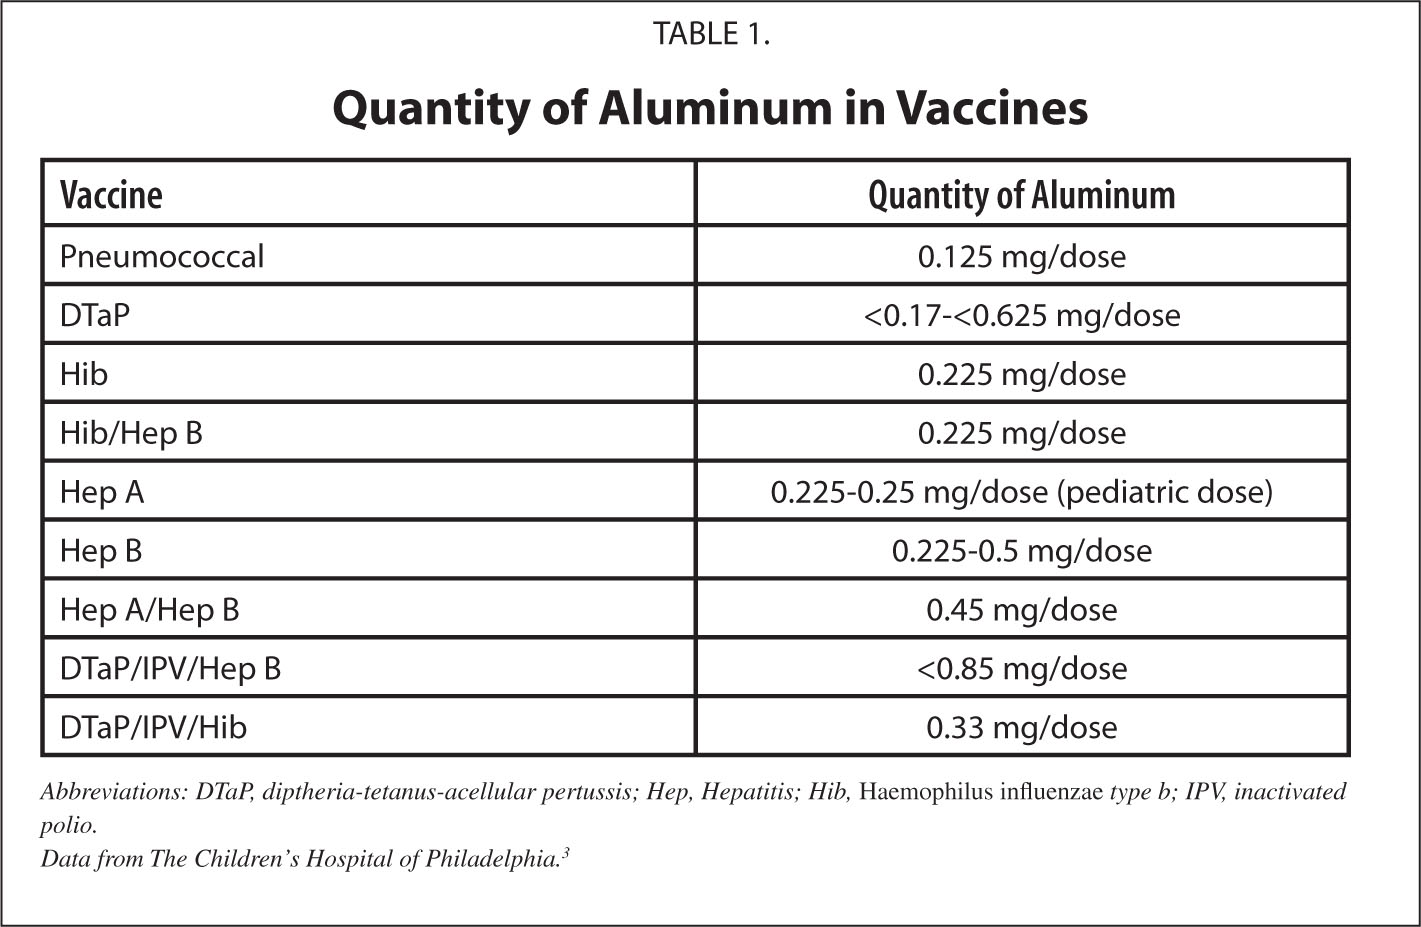 Quantity of Aluminum in Vaccines